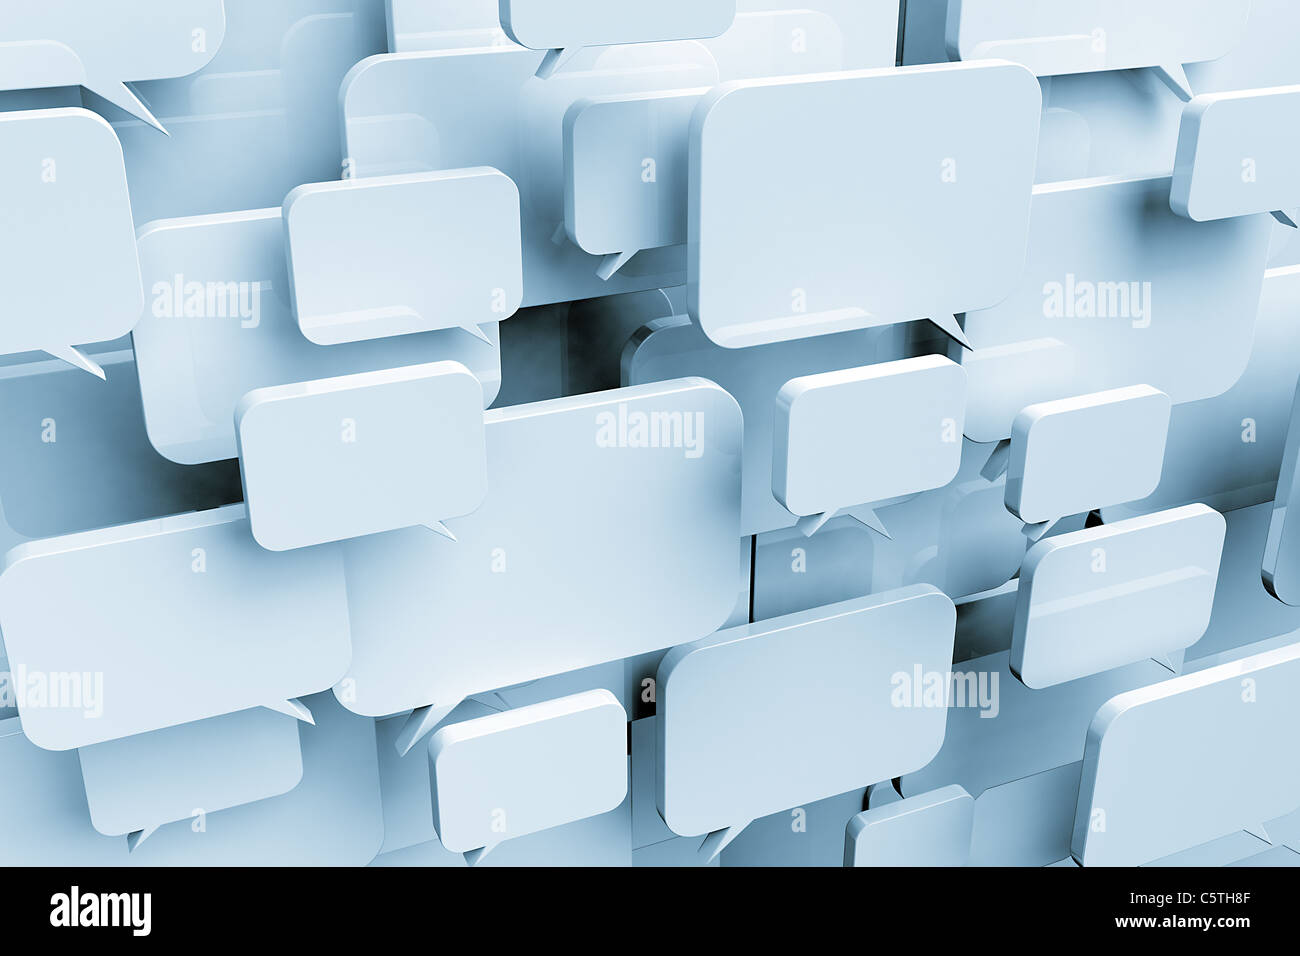 Social networking concept - Stock Image